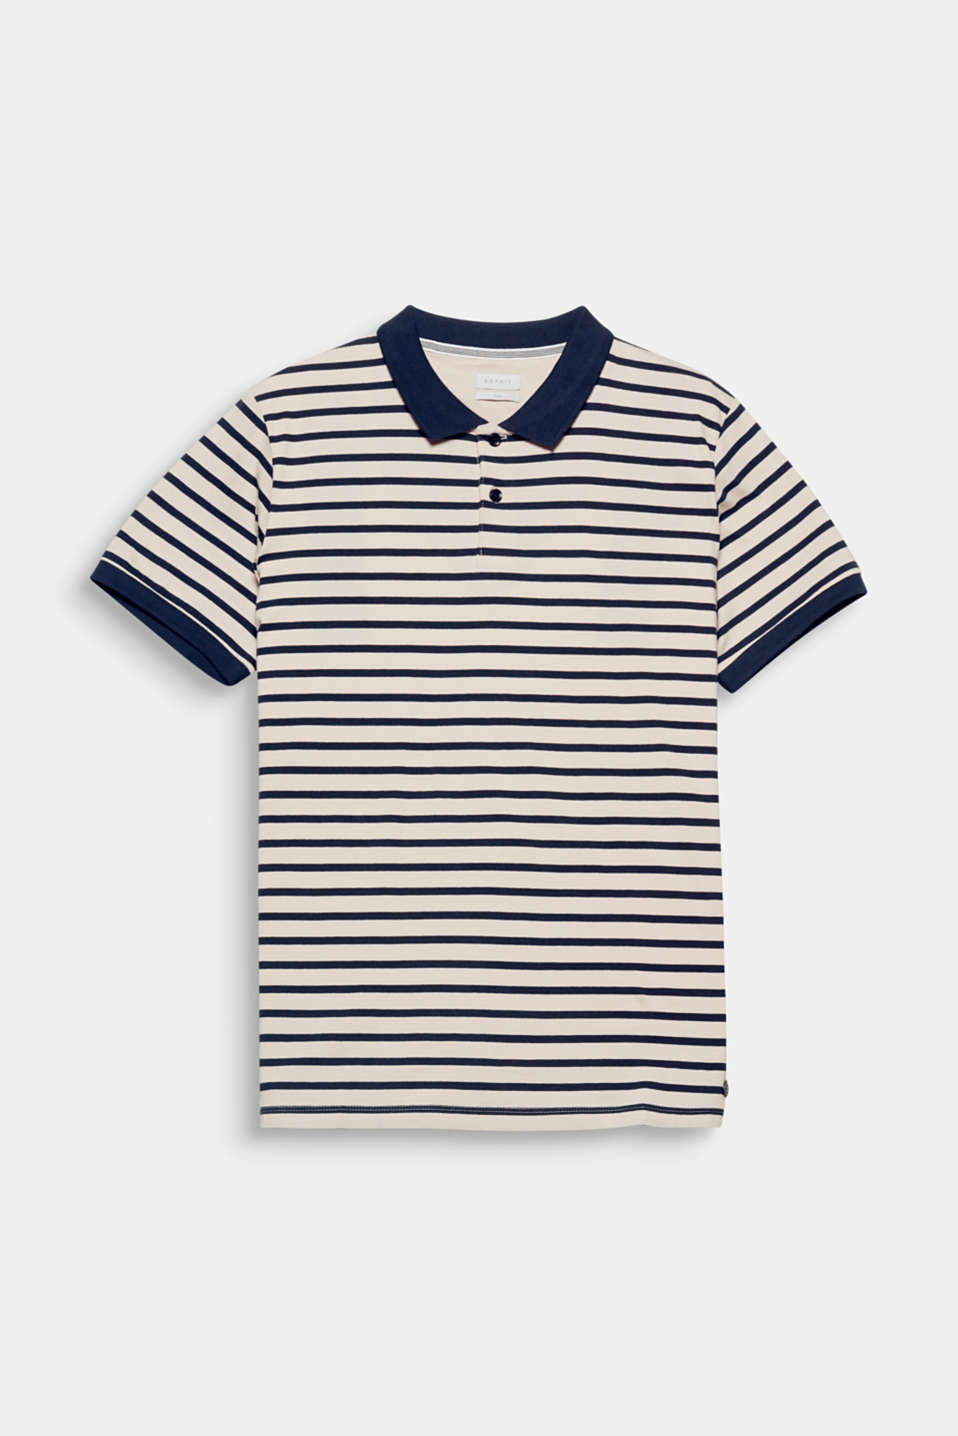 This polo shirt with nautical stripes made from 100% cotton is a new take on a fashion essential!